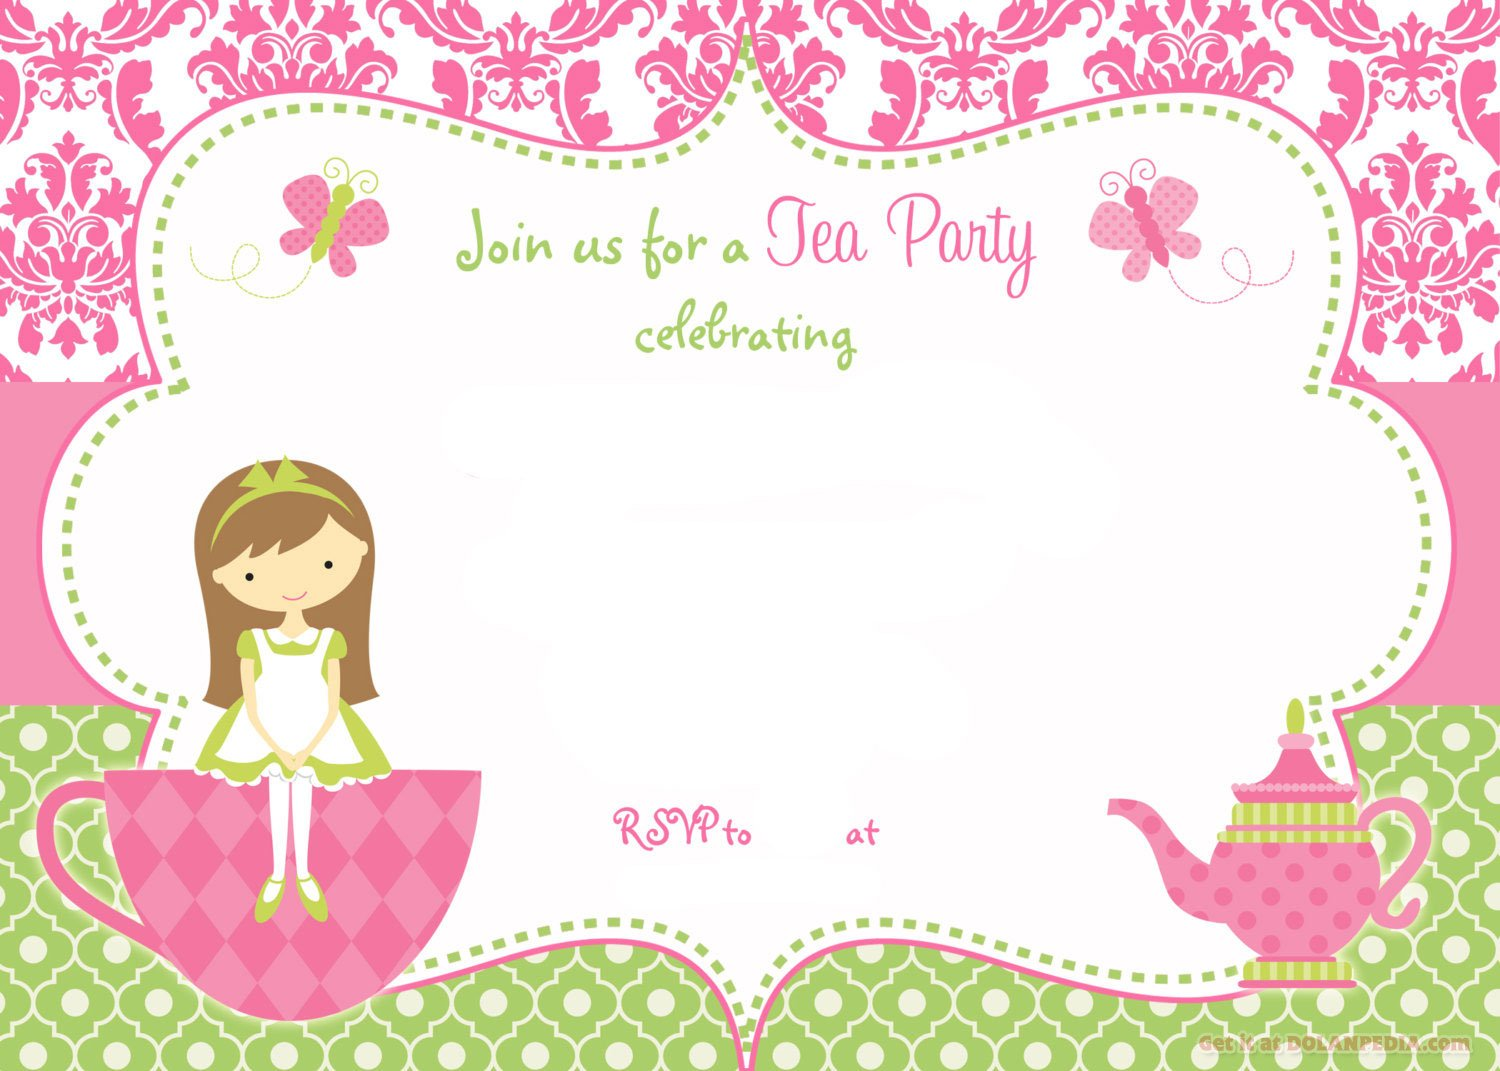 Free Printable Tea Party Invitation Template For Girl Drevio - Free photo party invitation templates